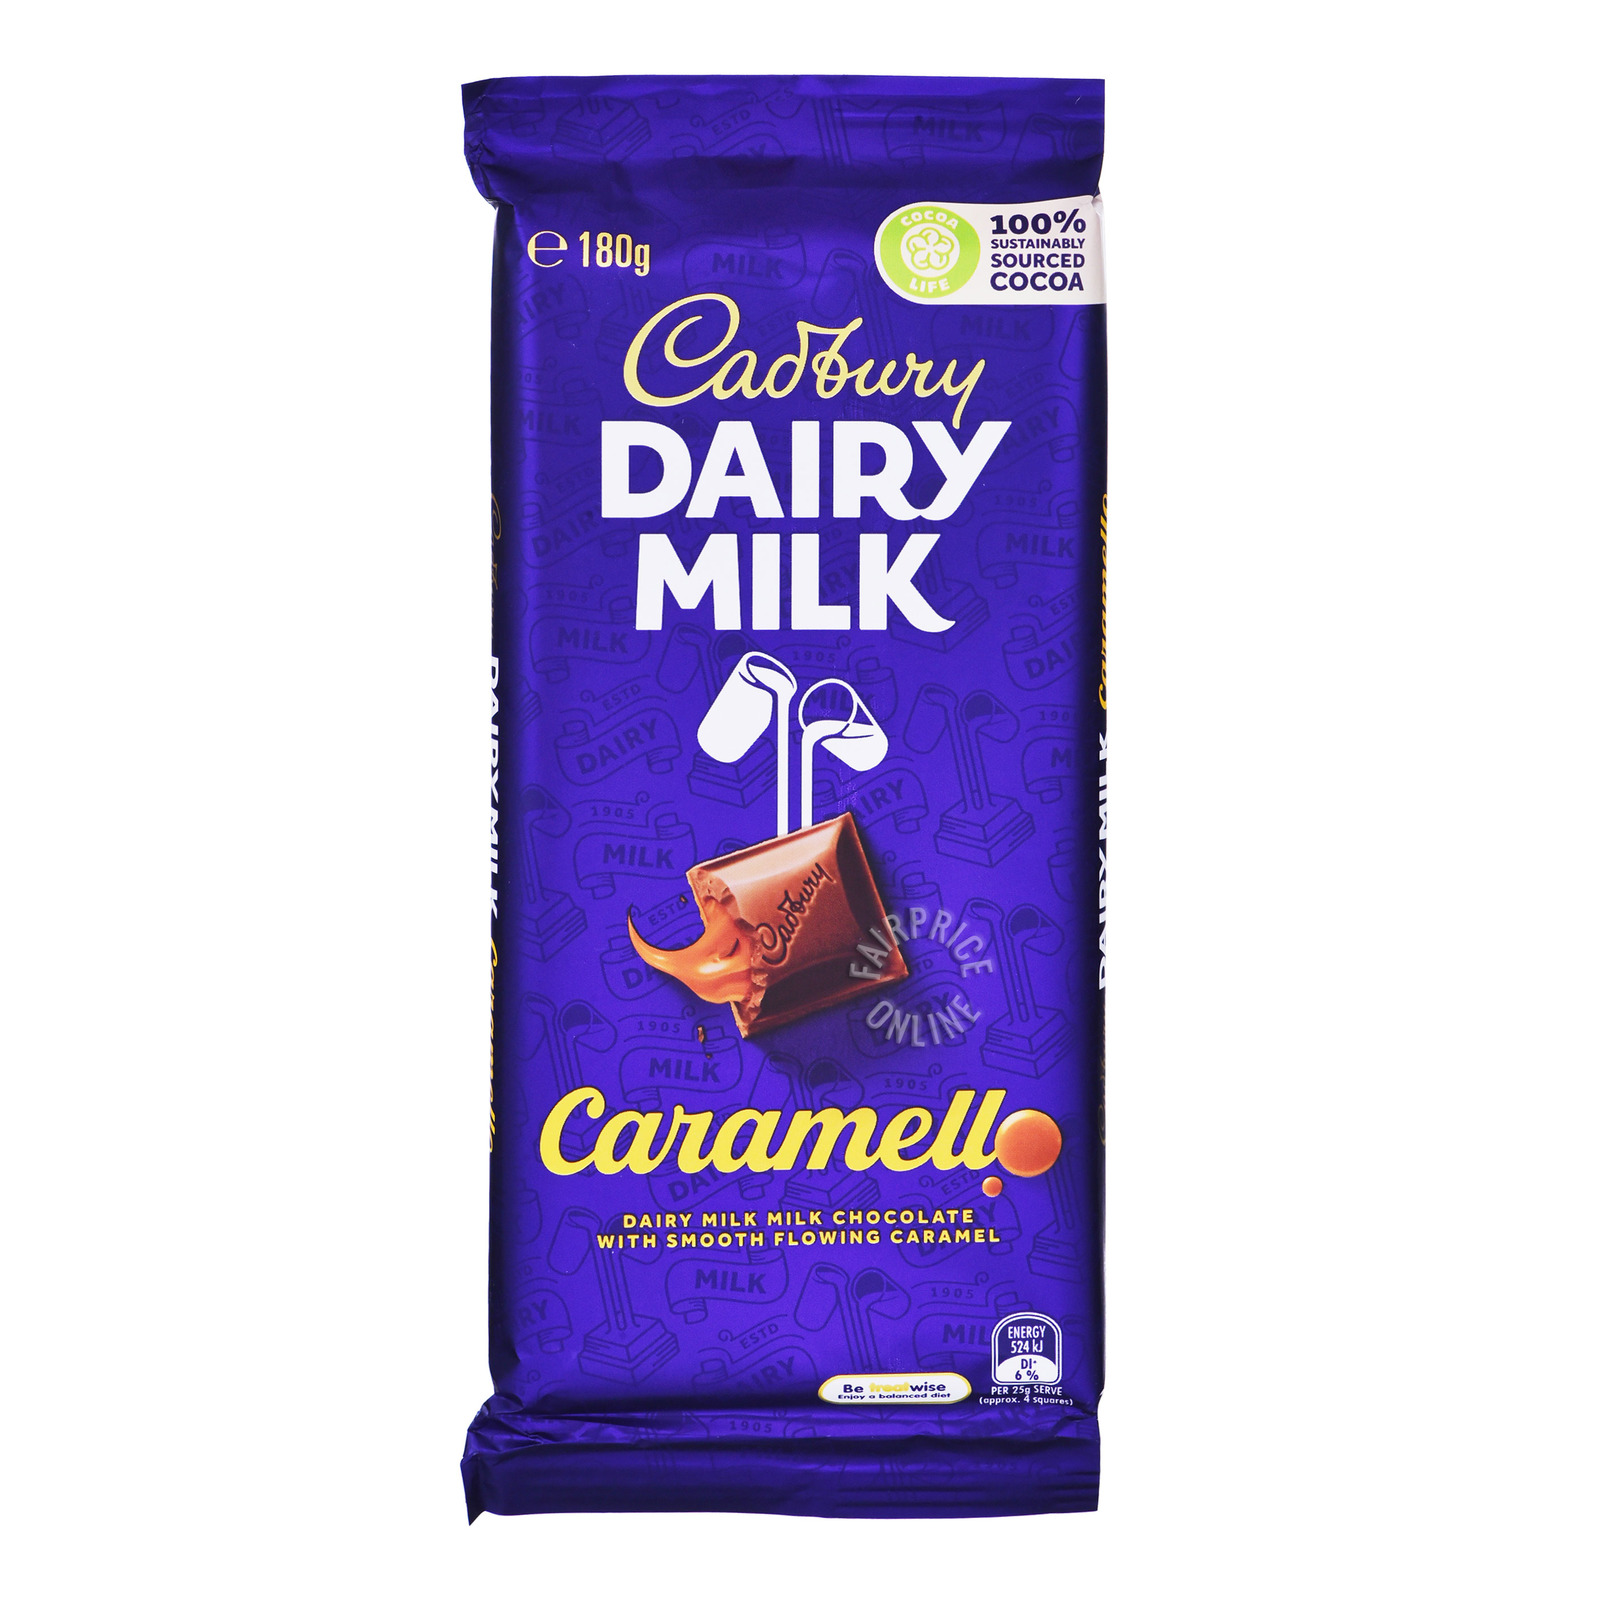 Cadbury Dairy Milk Chocolate Block - Caramello